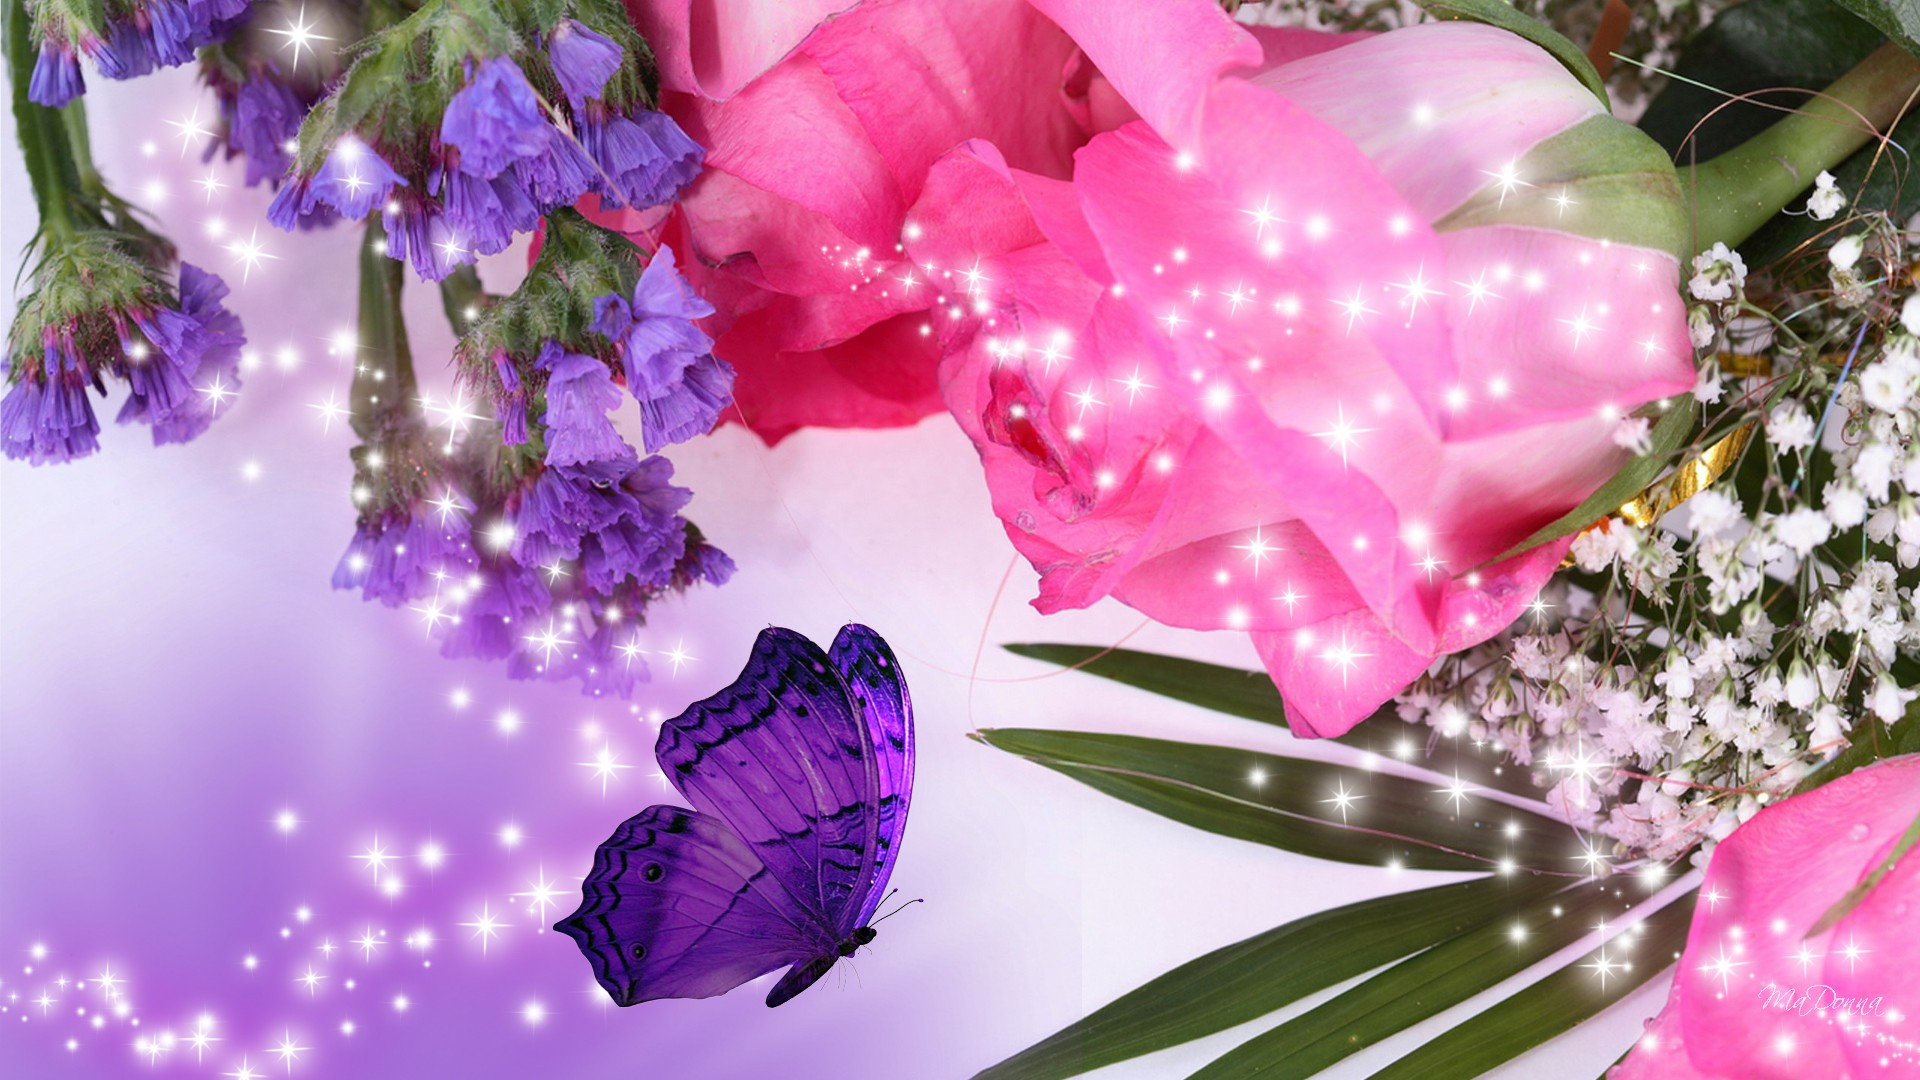 35 high definition pink wallpapers backgrounds for free download